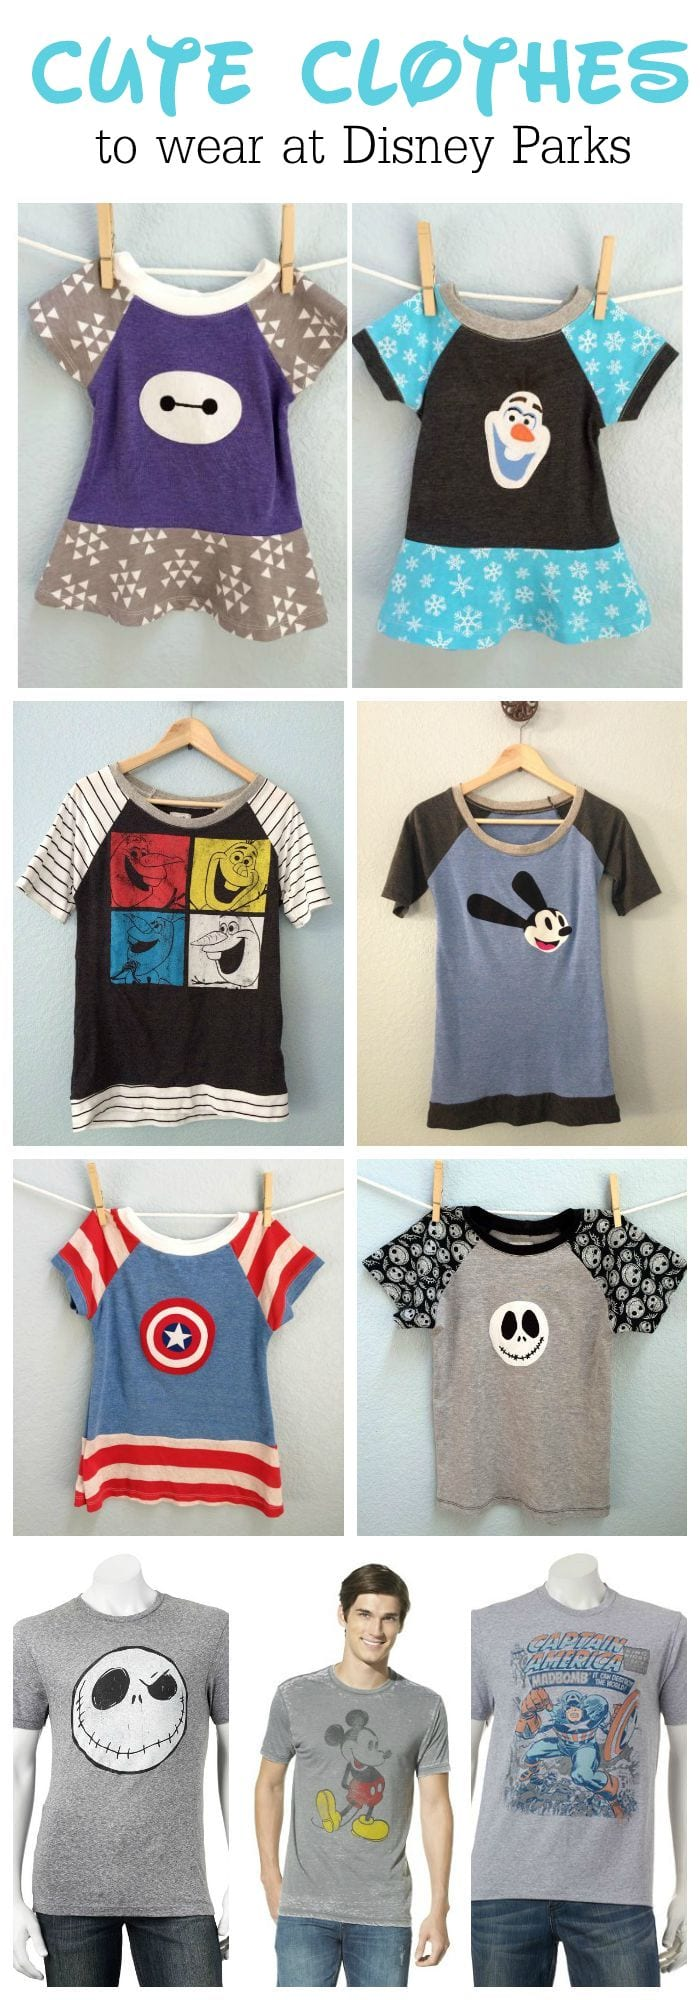 Cute-Clothes-to-wear-to-Disney